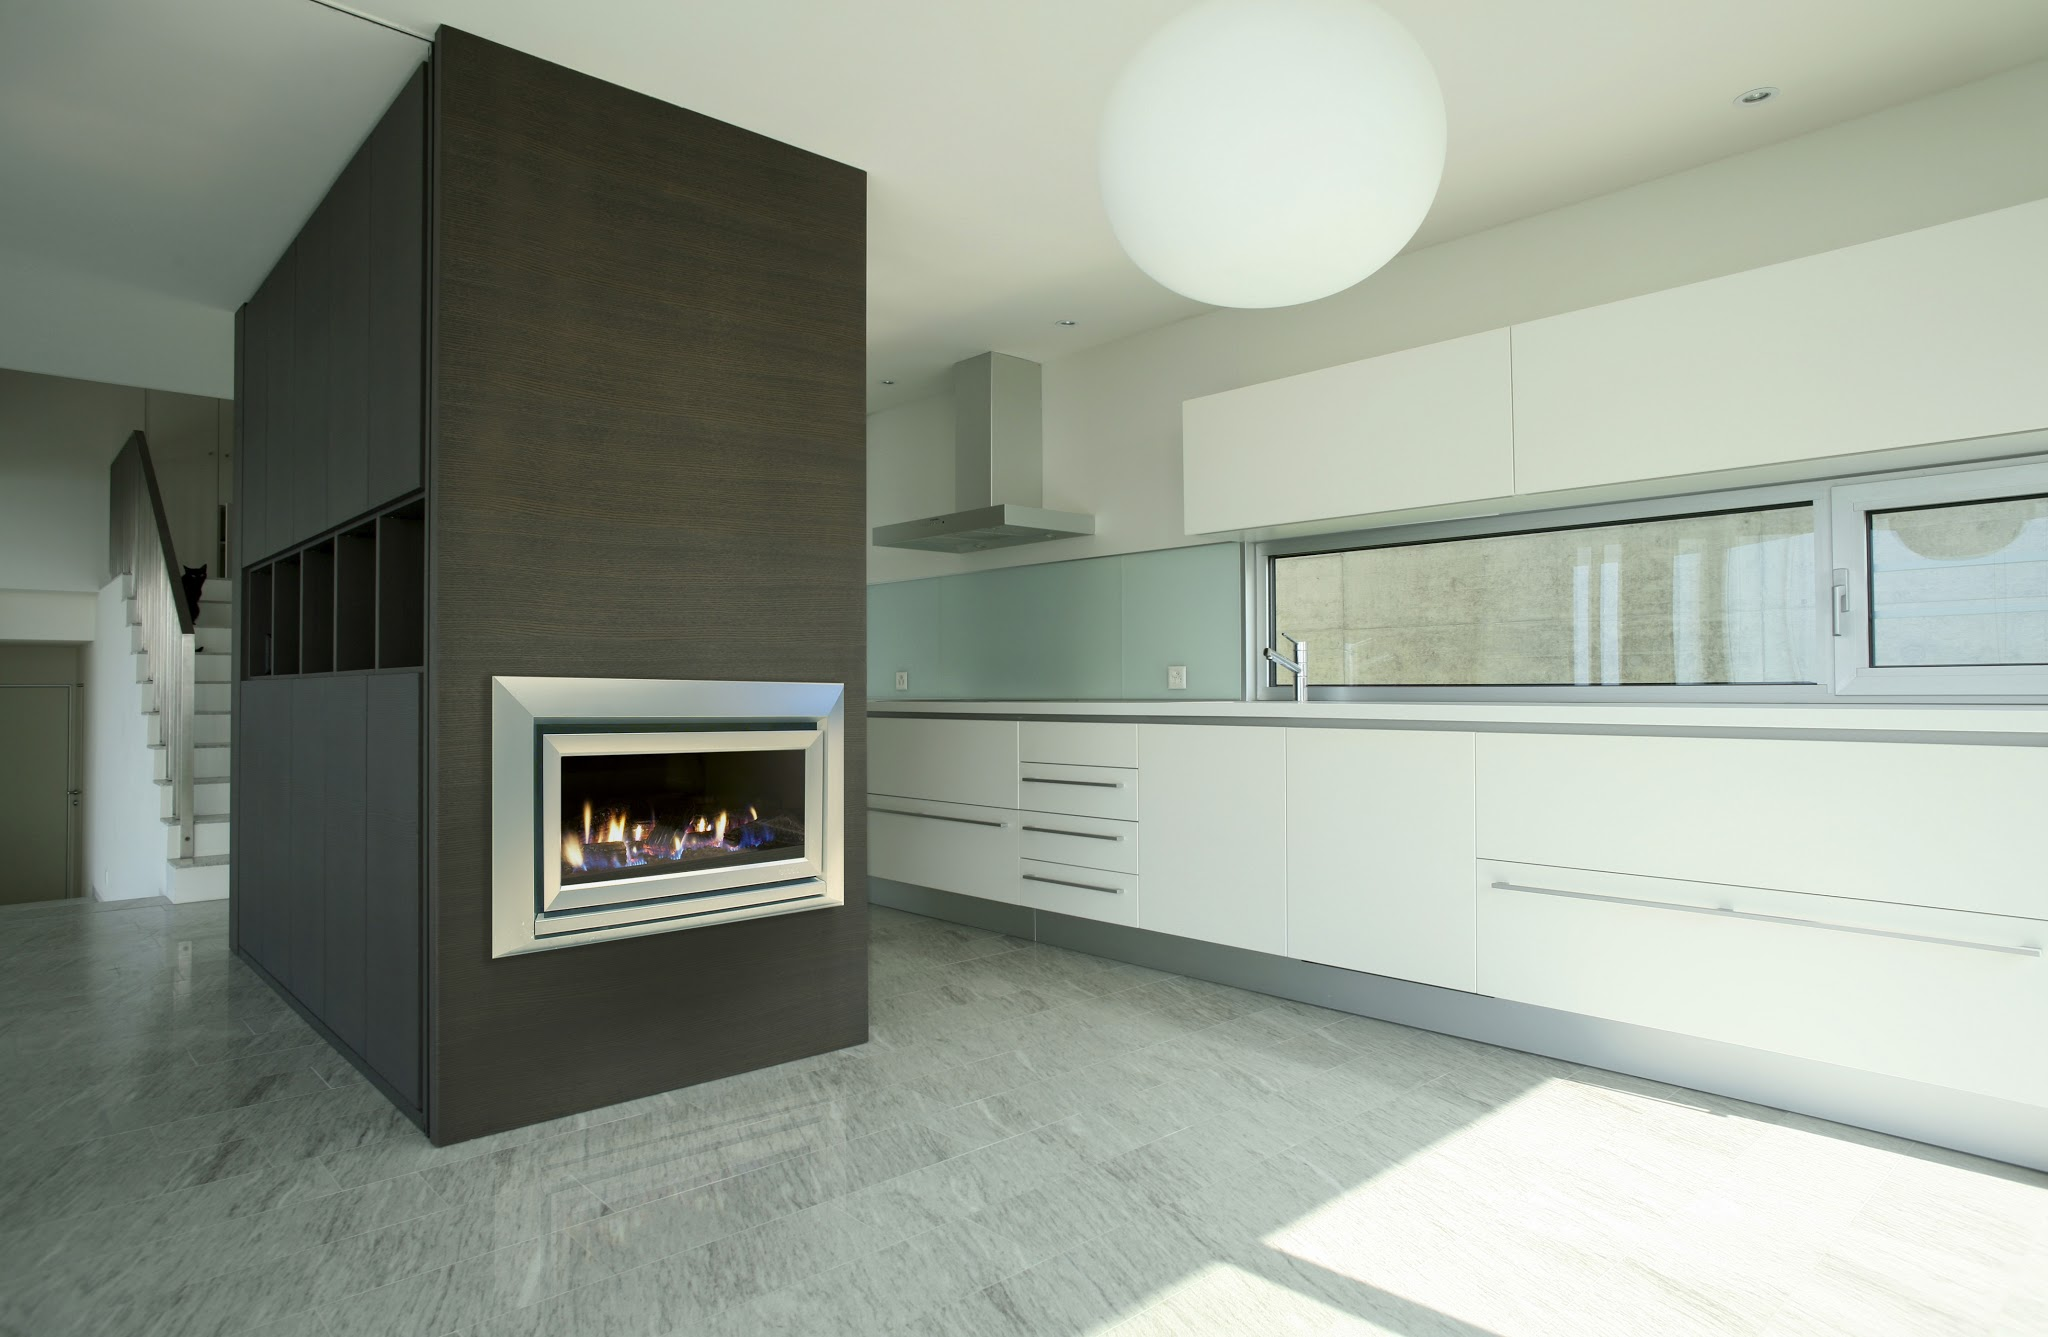 DL850 FIREPLACE